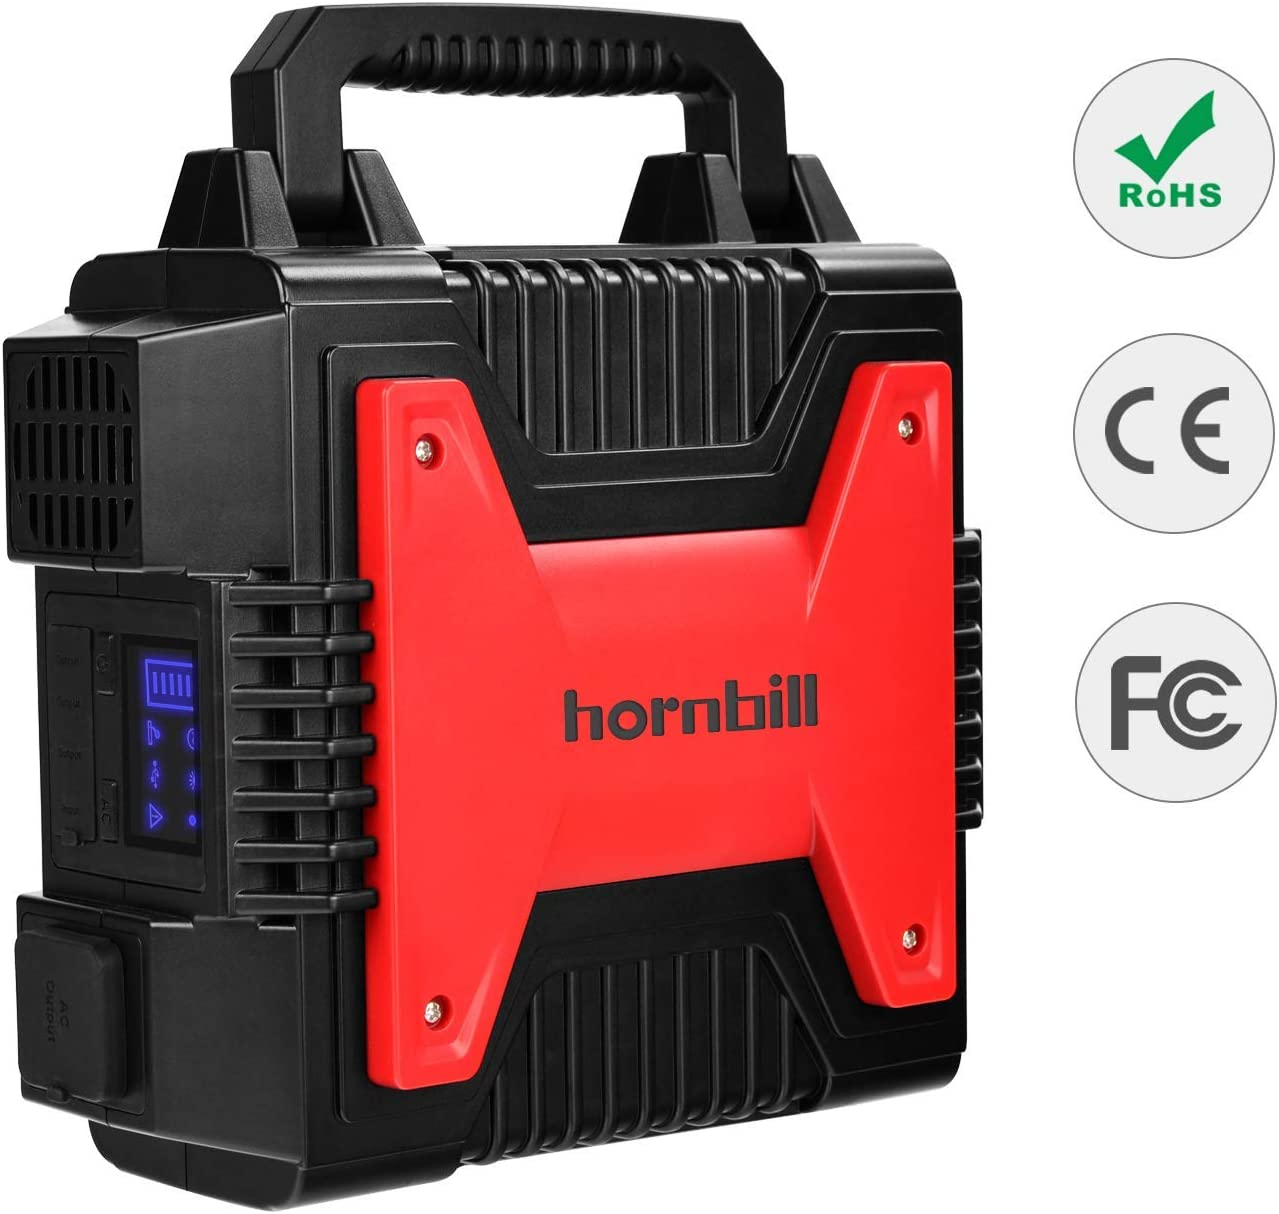 Portable Power Station 266WH, Hornbill Camping Generator 80000mAh,150W Power Supply Solar Generator with 2 110V AC Outlet, 1 DC ports, 2 USB Outputs,1 Cigarette ocket, LED Display for Camping